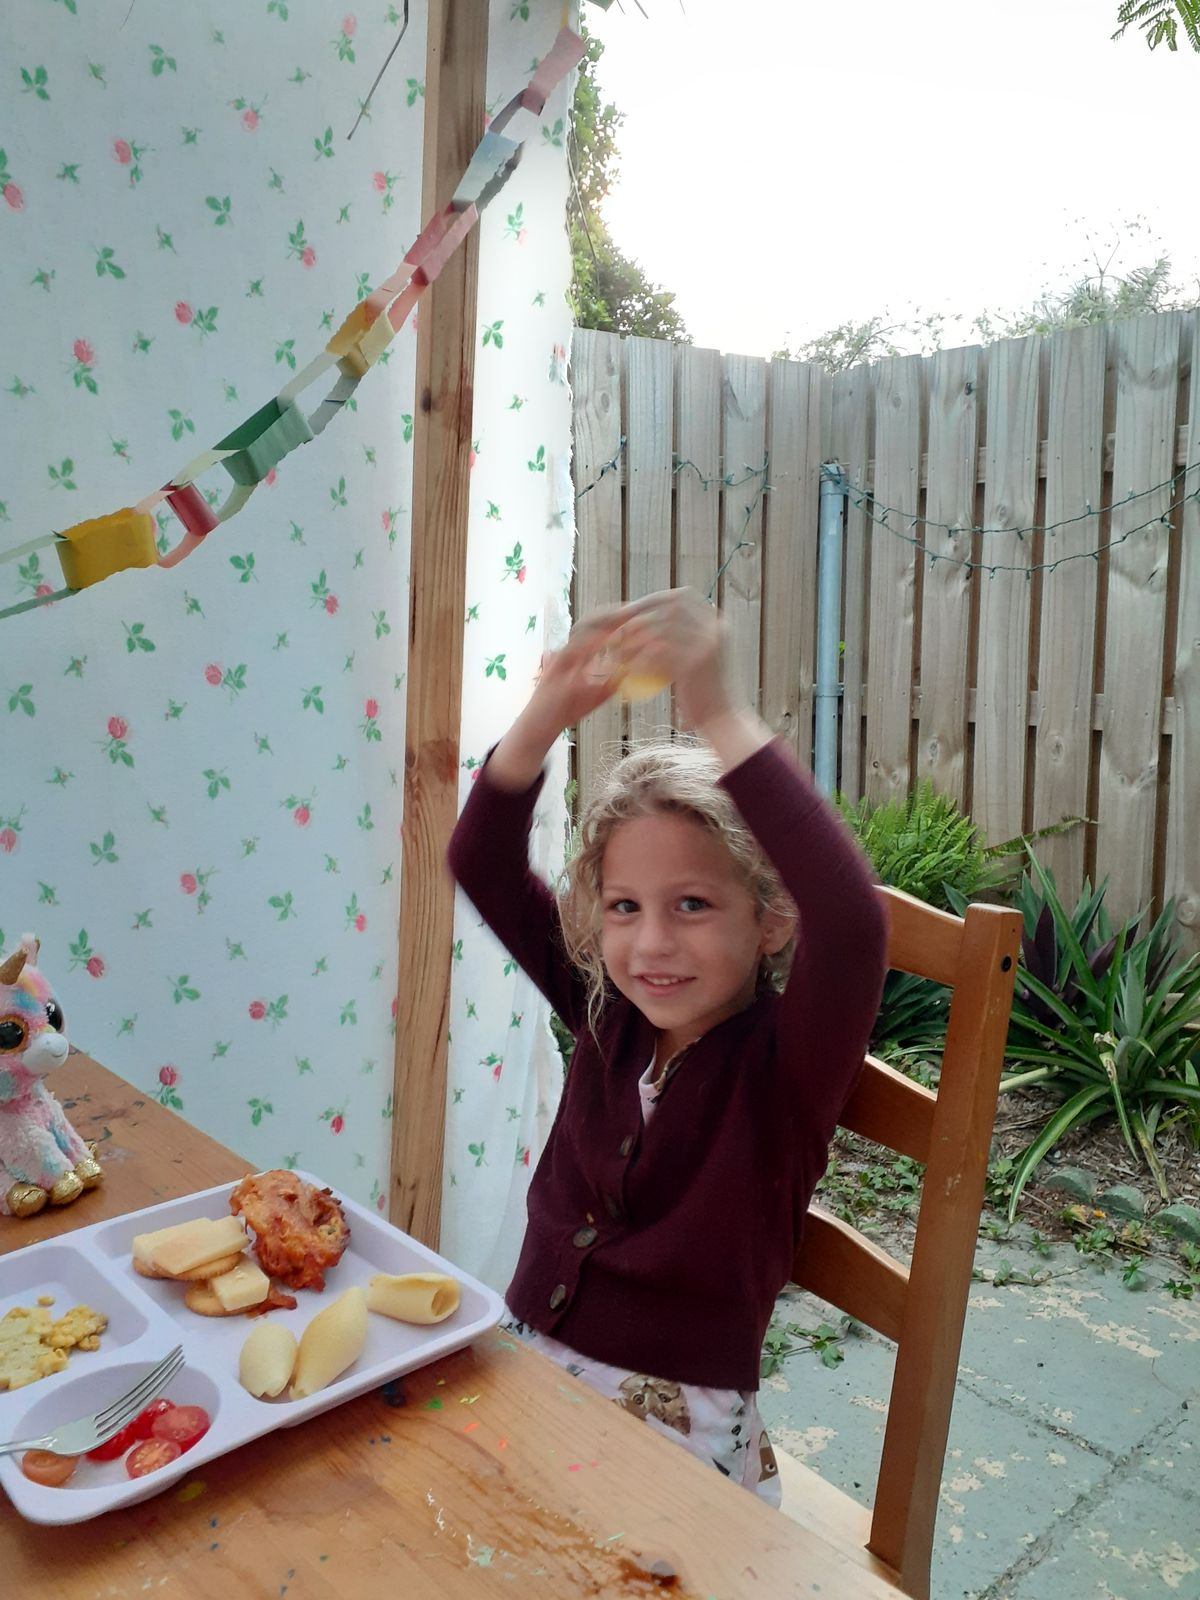 Mya Jardat's daughter sits in a sukkah, a temporary structure built by Jews to commemorate Shukkot, in anticipation of a guest joining the family for dinner at their home in Florida on Thursday, Sept. 30, 2021 .